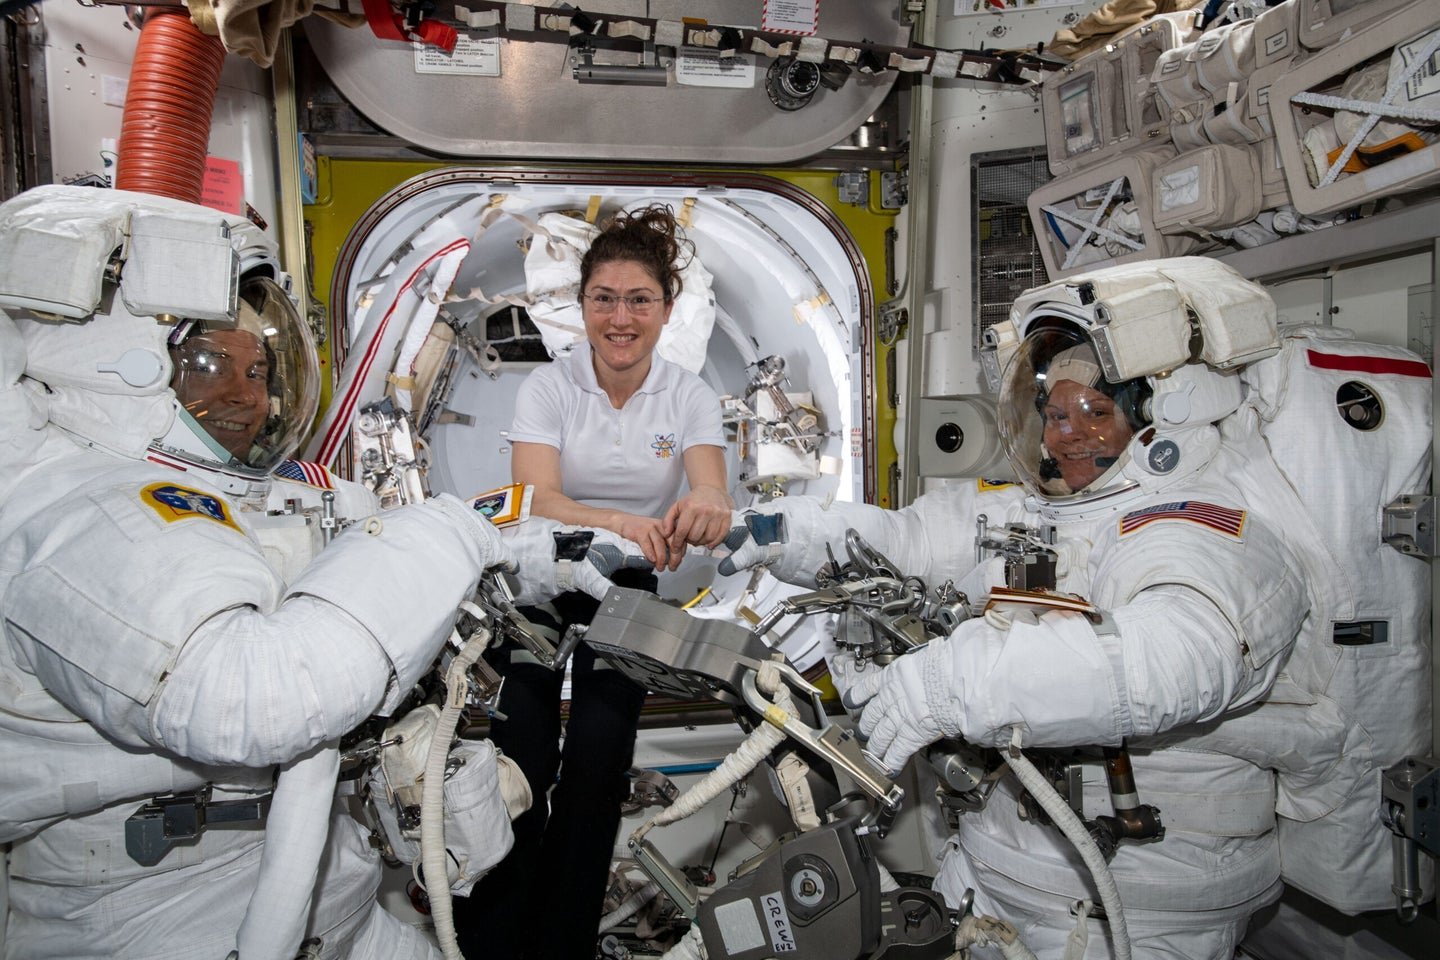 Here's why NASA really canceled its first all-women spacewalk